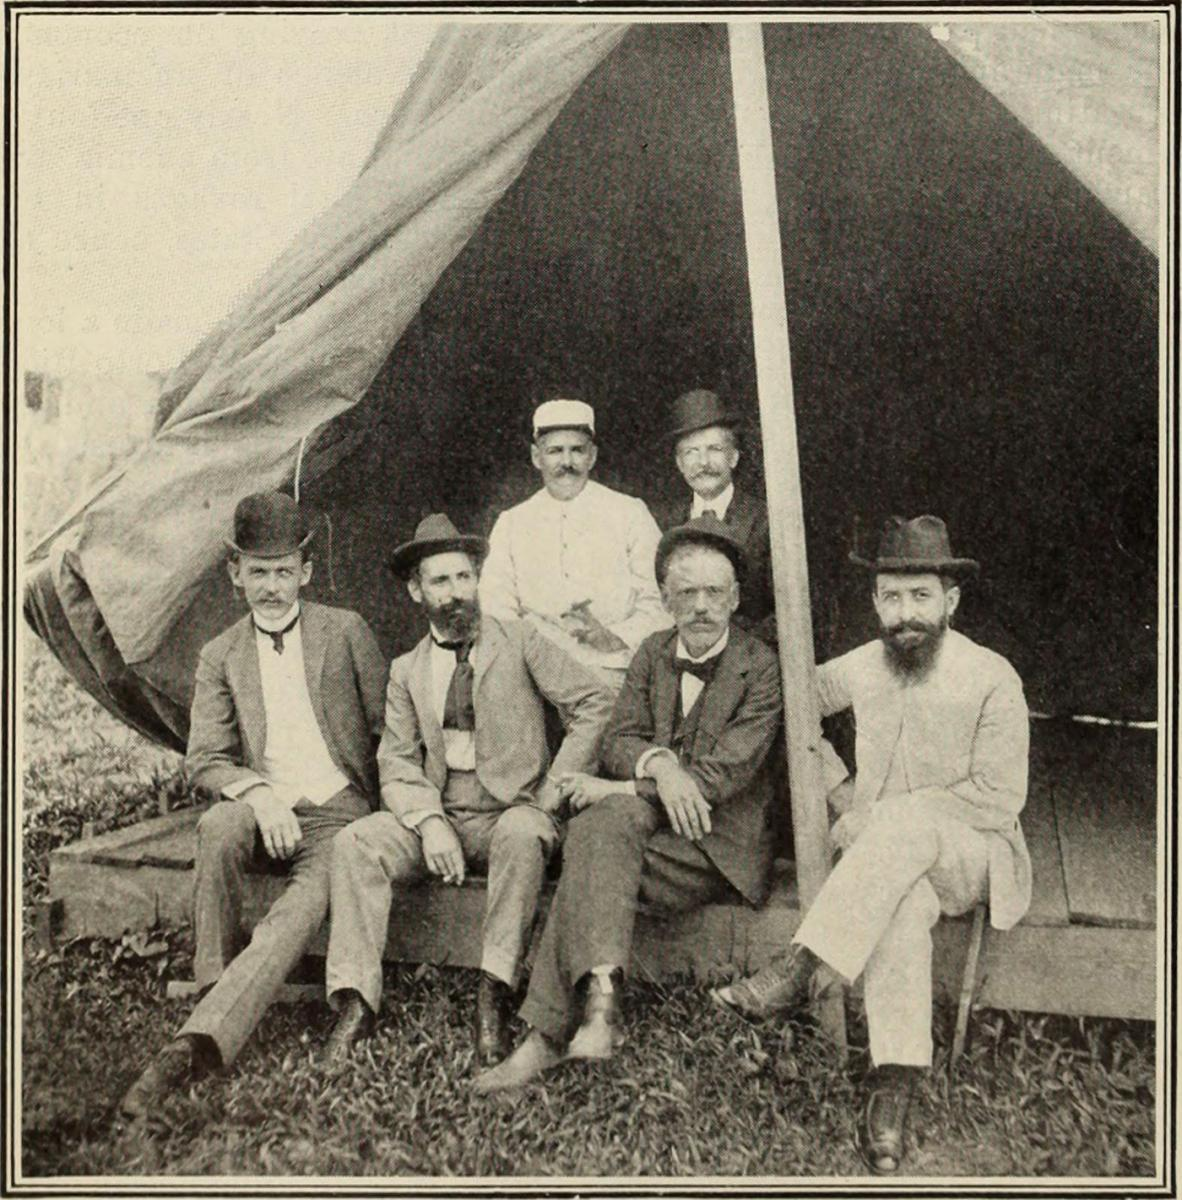 Group of United States Government and Native Physicians, including Dr. Bailey K. Ashford, Puerto Rico, ca. 1890. Image courtesy of Flickr user Internet Archive Book Images. Image is in public domain.